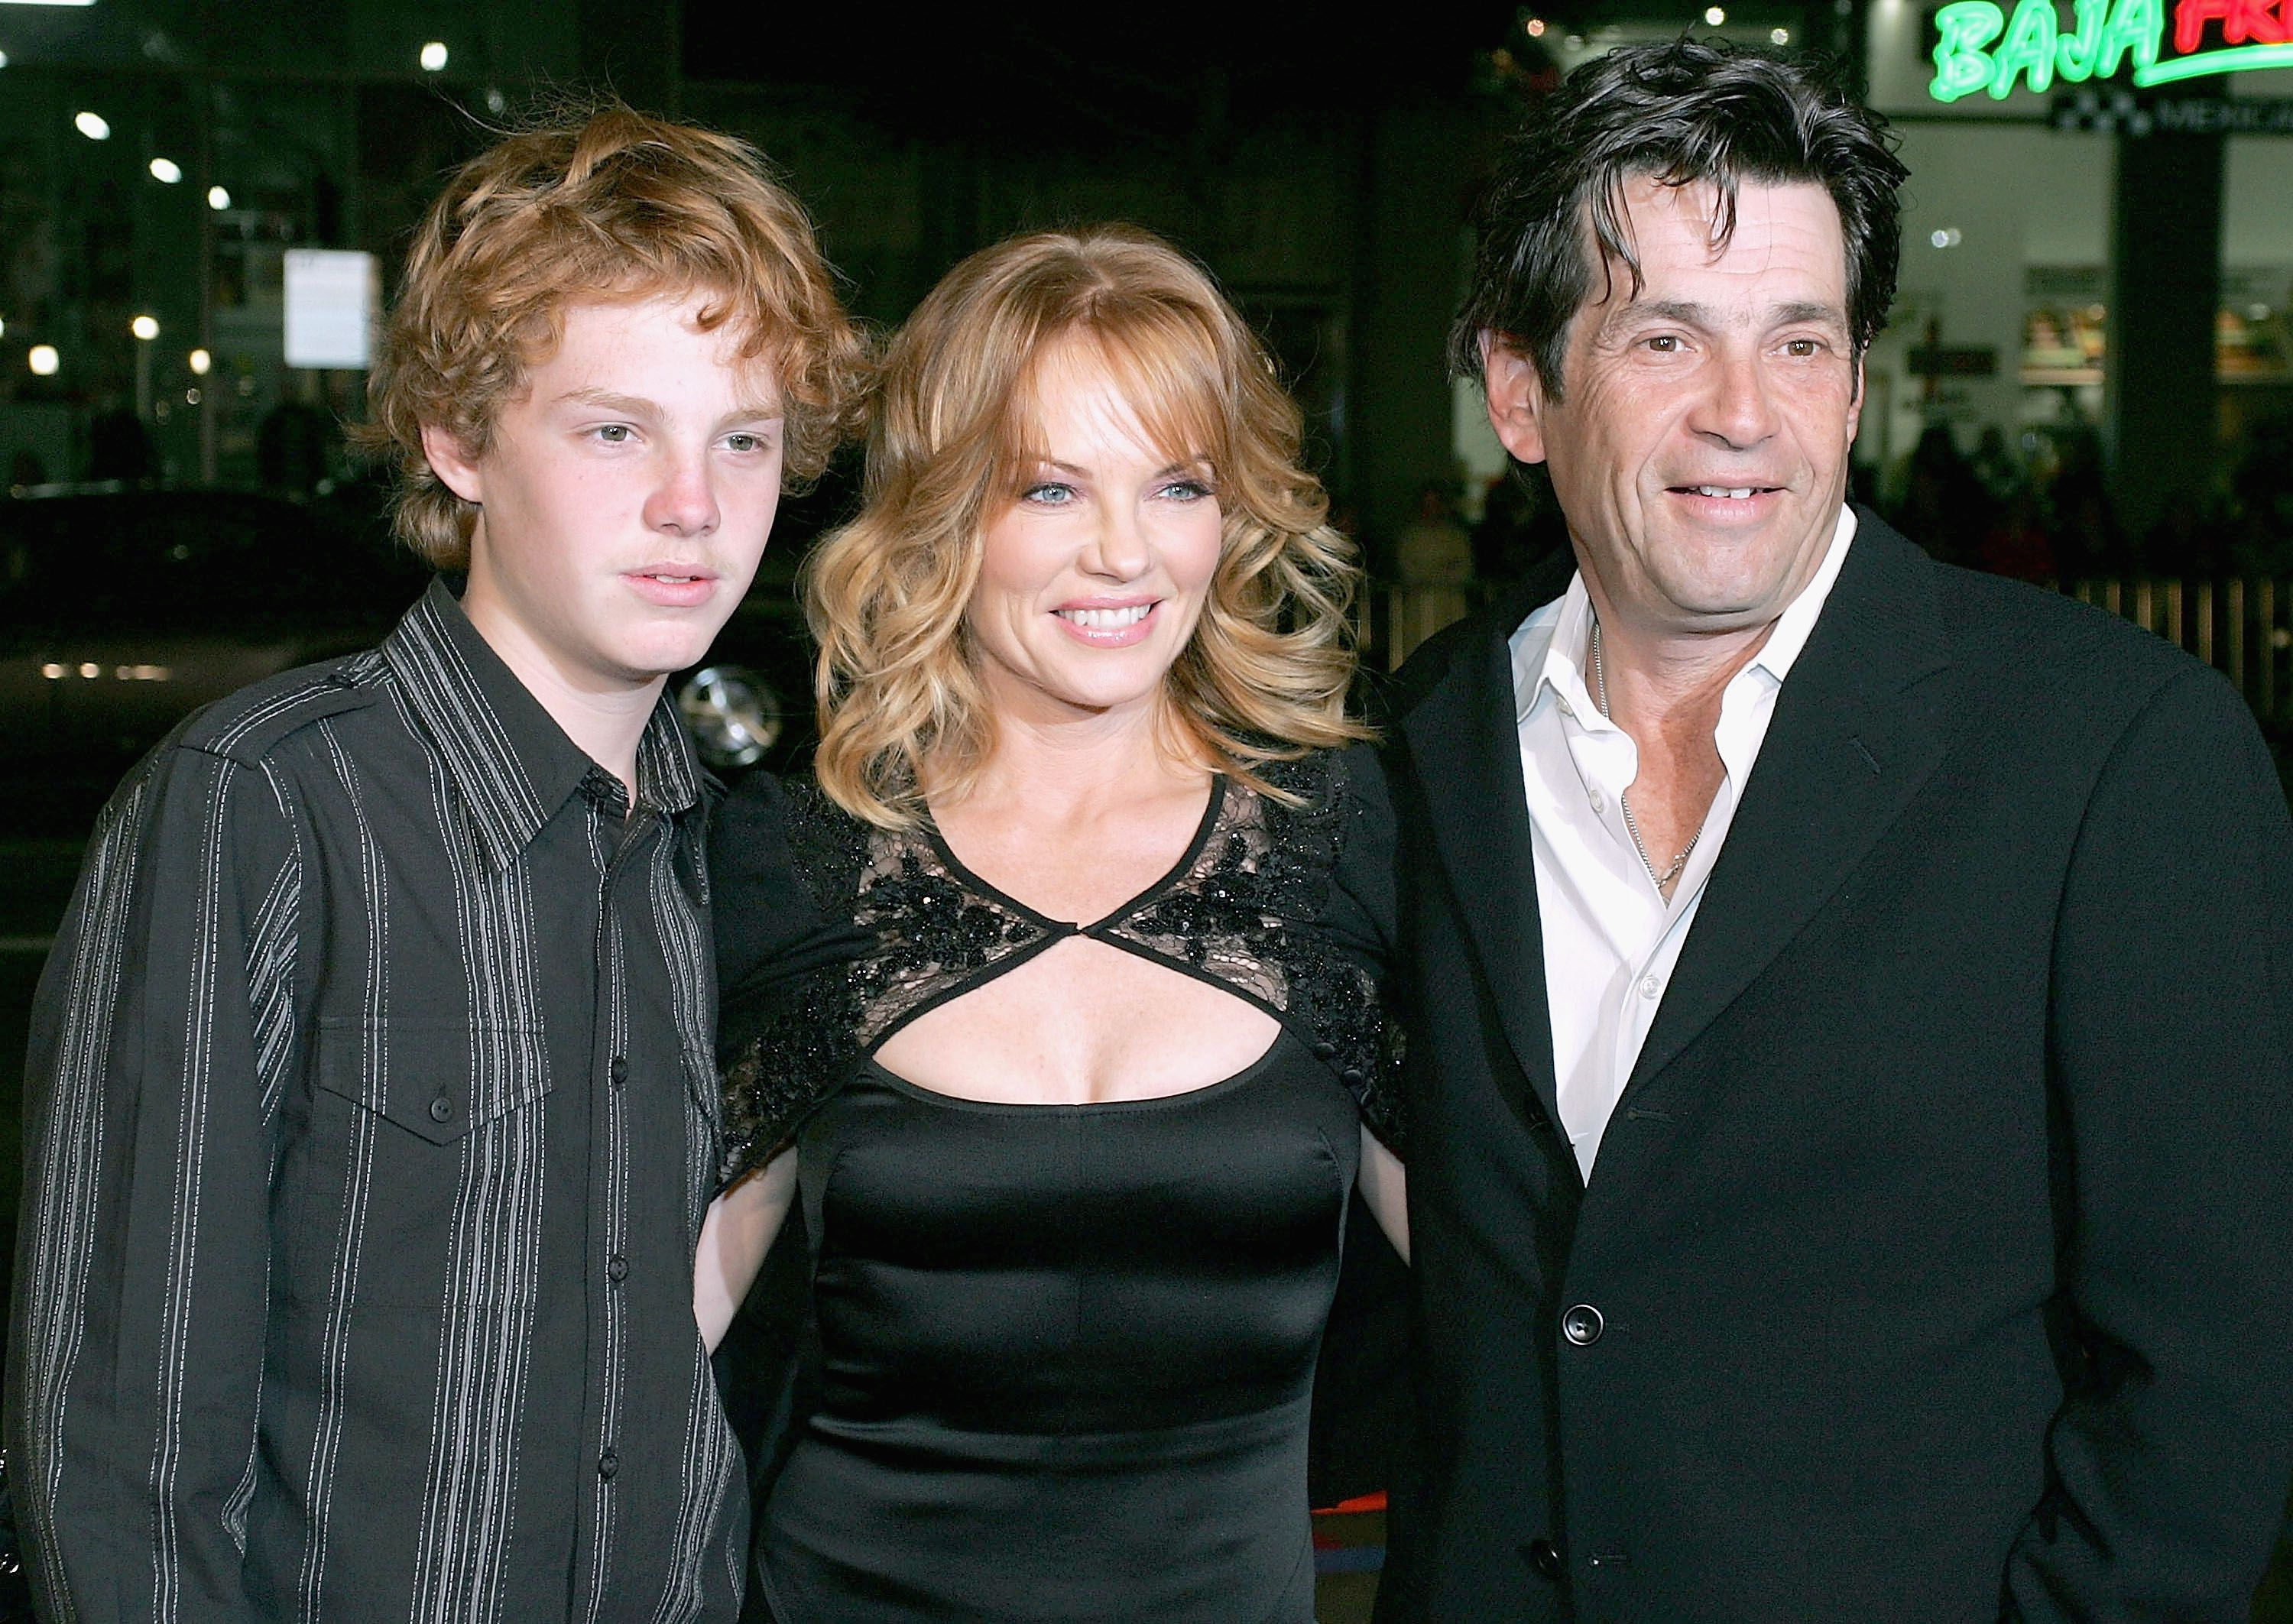 Alan Rosenberg, Marg Helgenberger and their son Hughie at Rape Treatment Center Annual Benefit in 2005 | Source: Getty Images